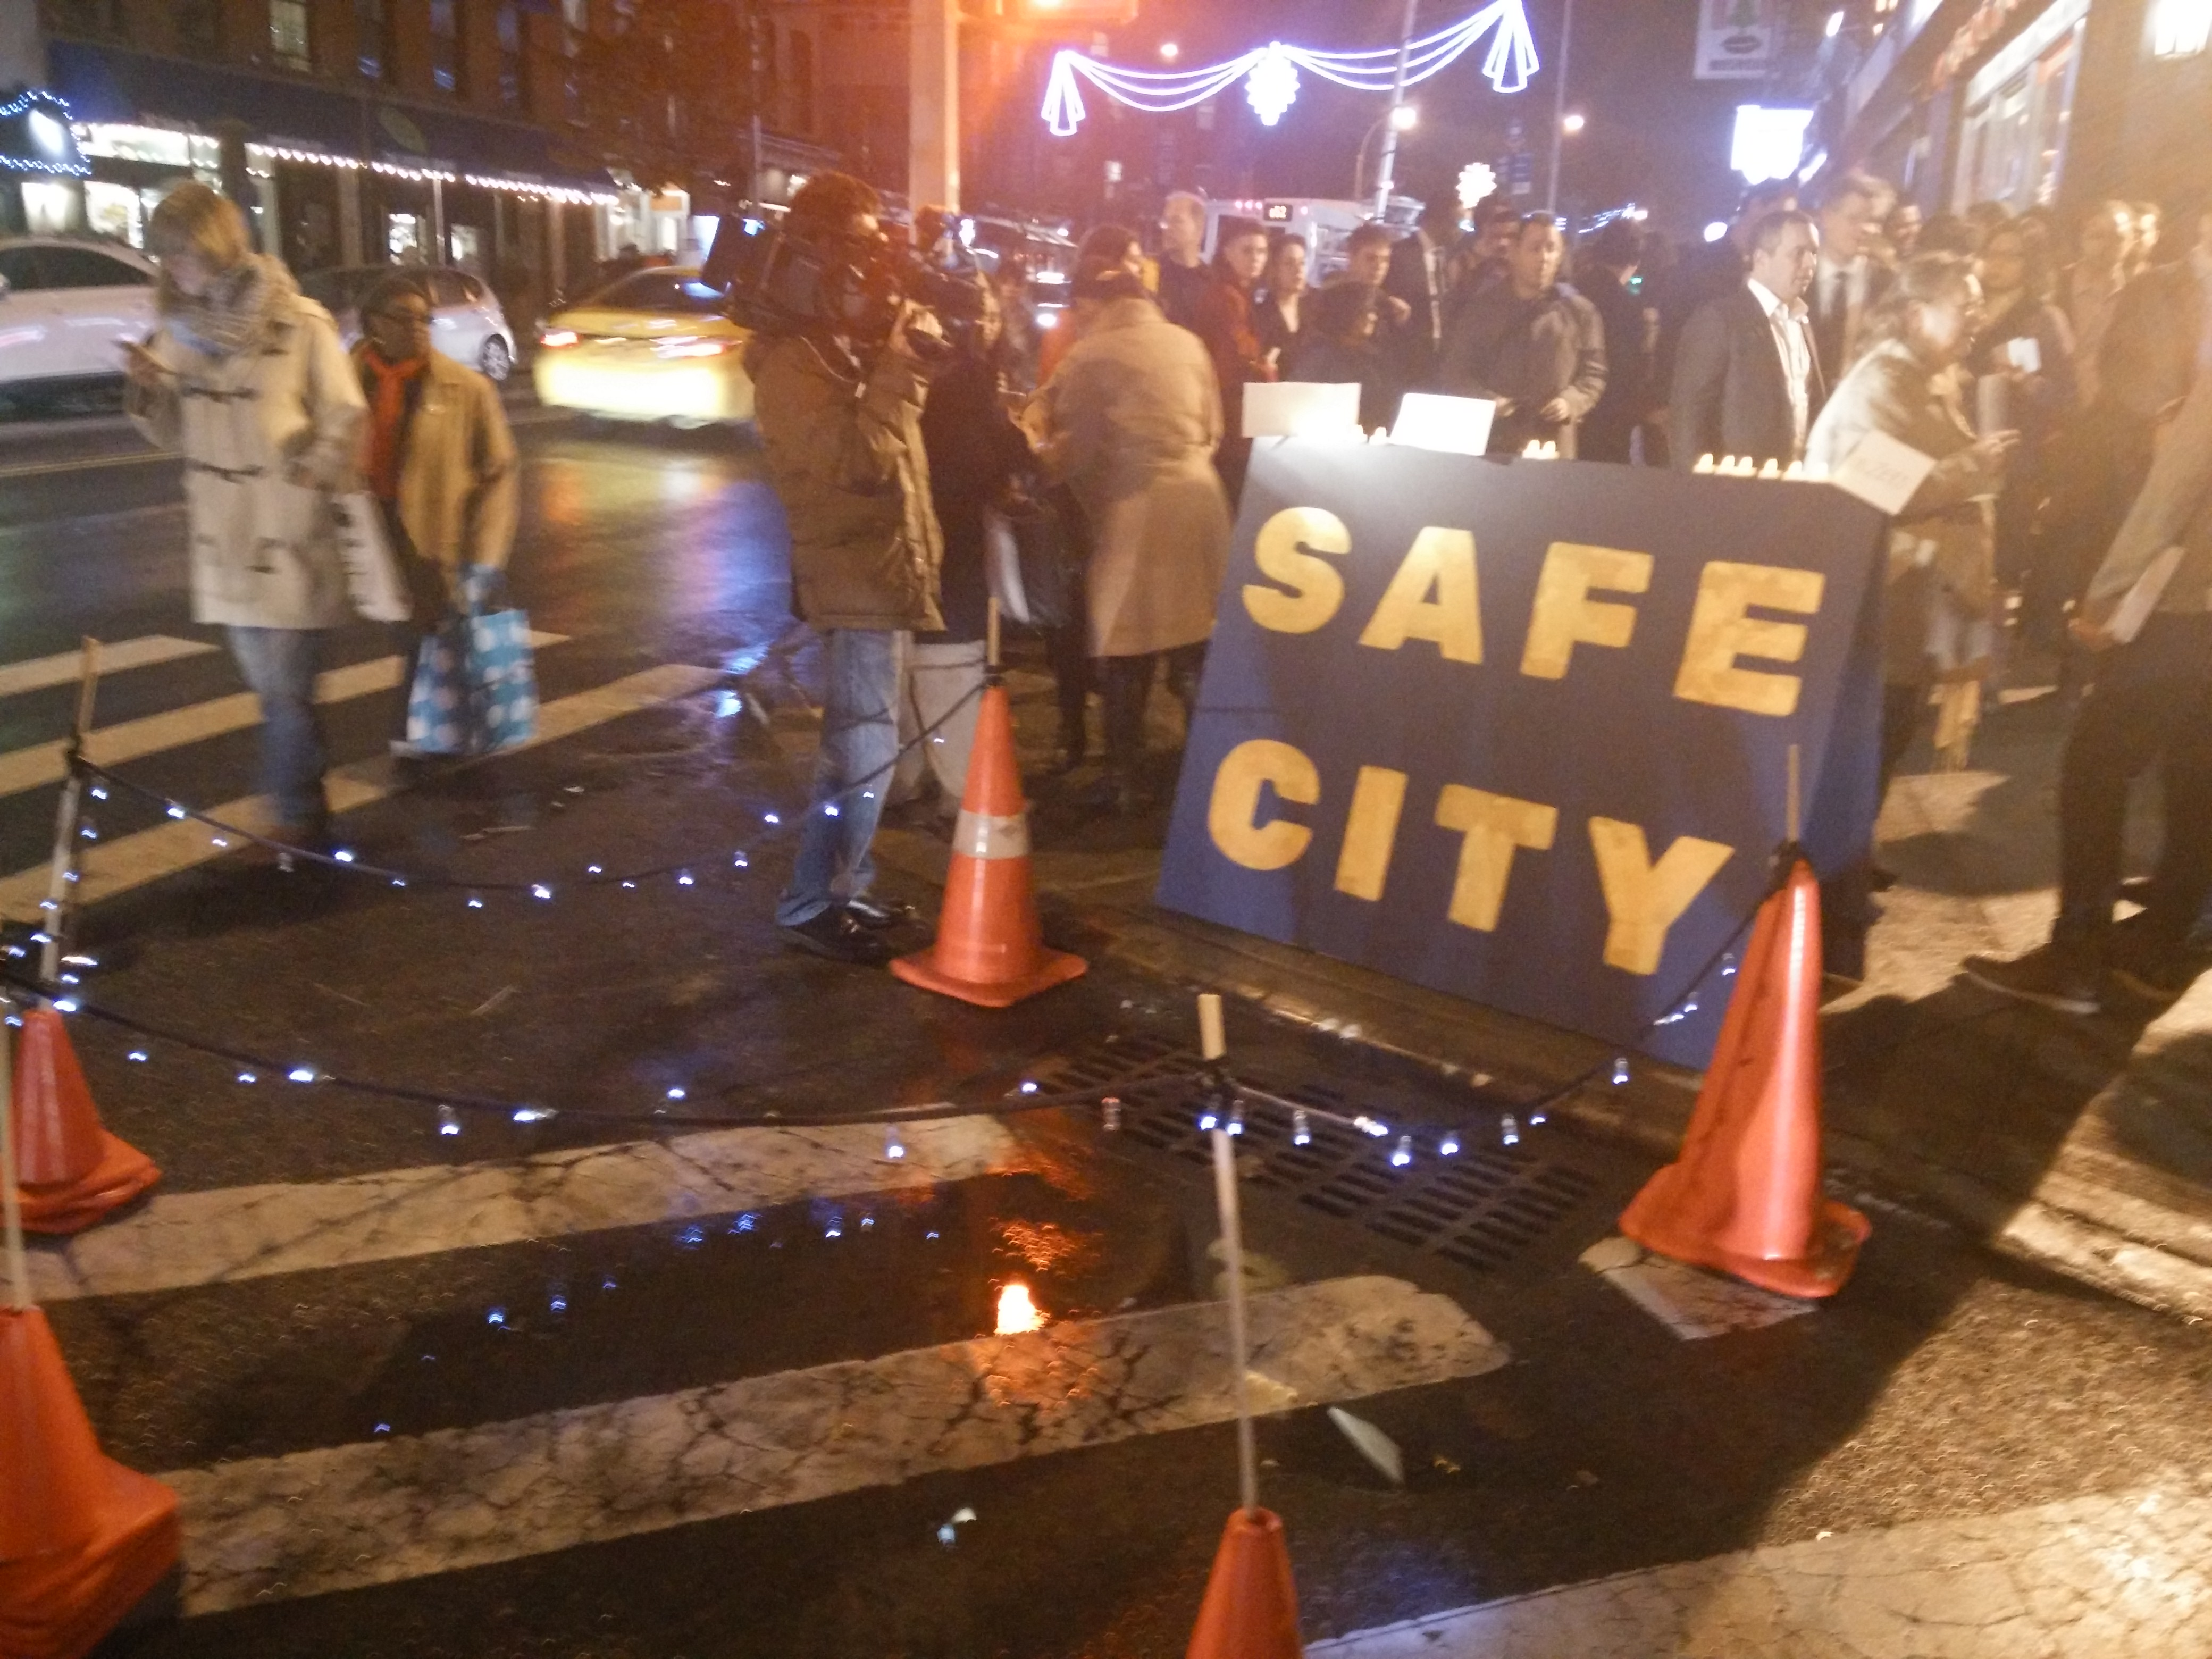 Nicodemus' colleagues at Indiewalls hope their art installation draws attention to traffic violence and Vision Zero. Photo: David Meyer